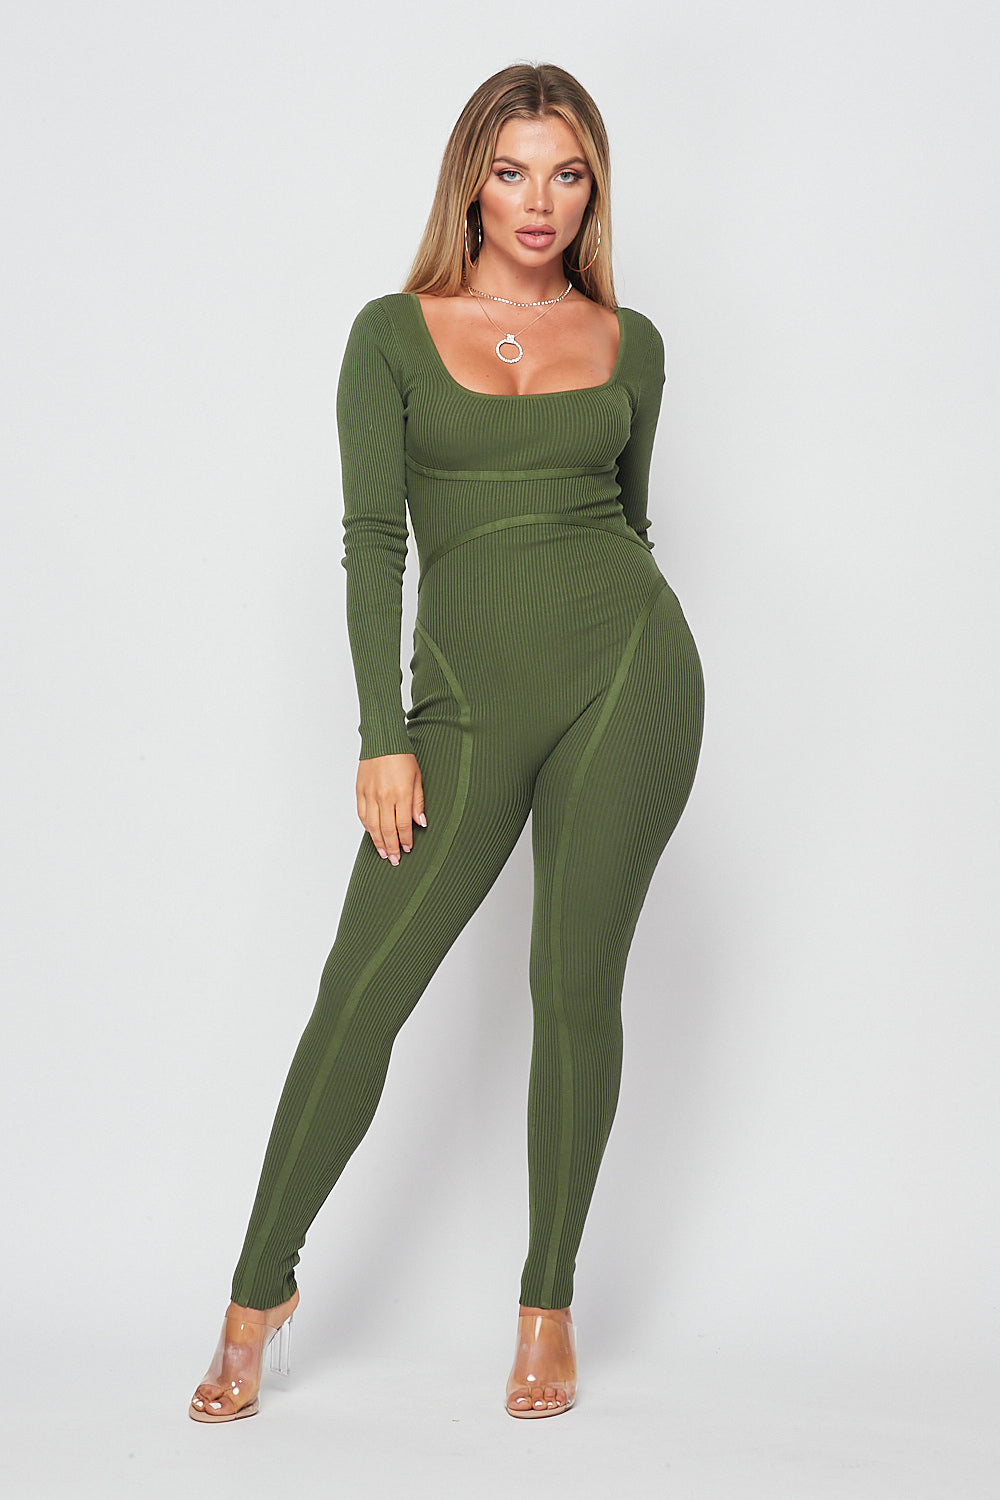 Chic Knit Long Sleeve Jumpsuit-OLIVE - Fashion House USA